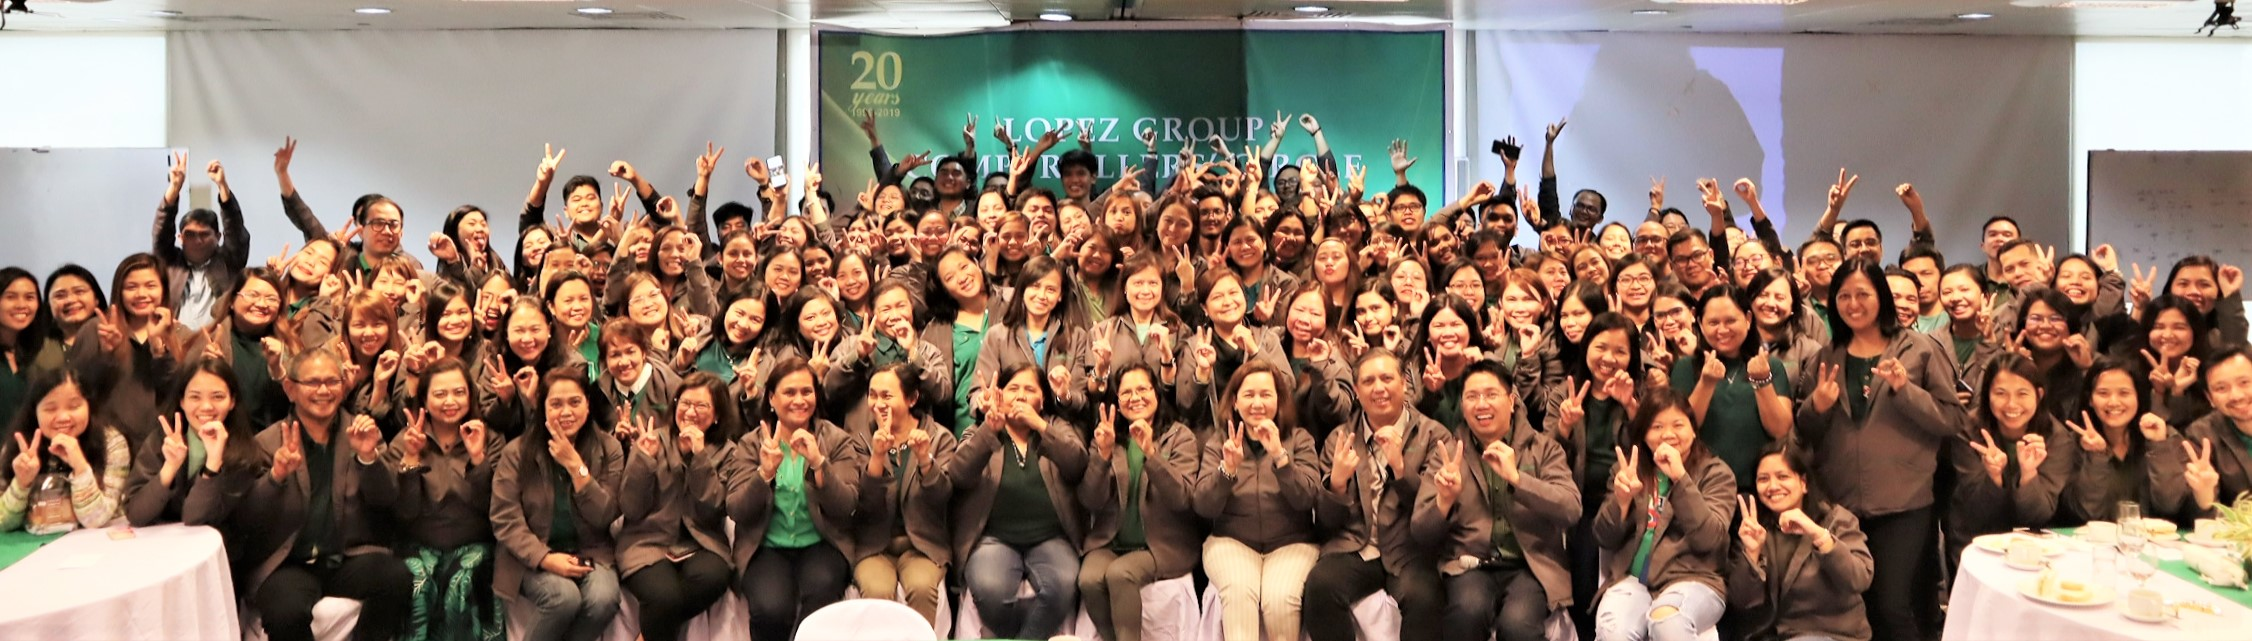 The Lopez Group Comptrollers' Circle celebrates two decades of commitment to professional excellence